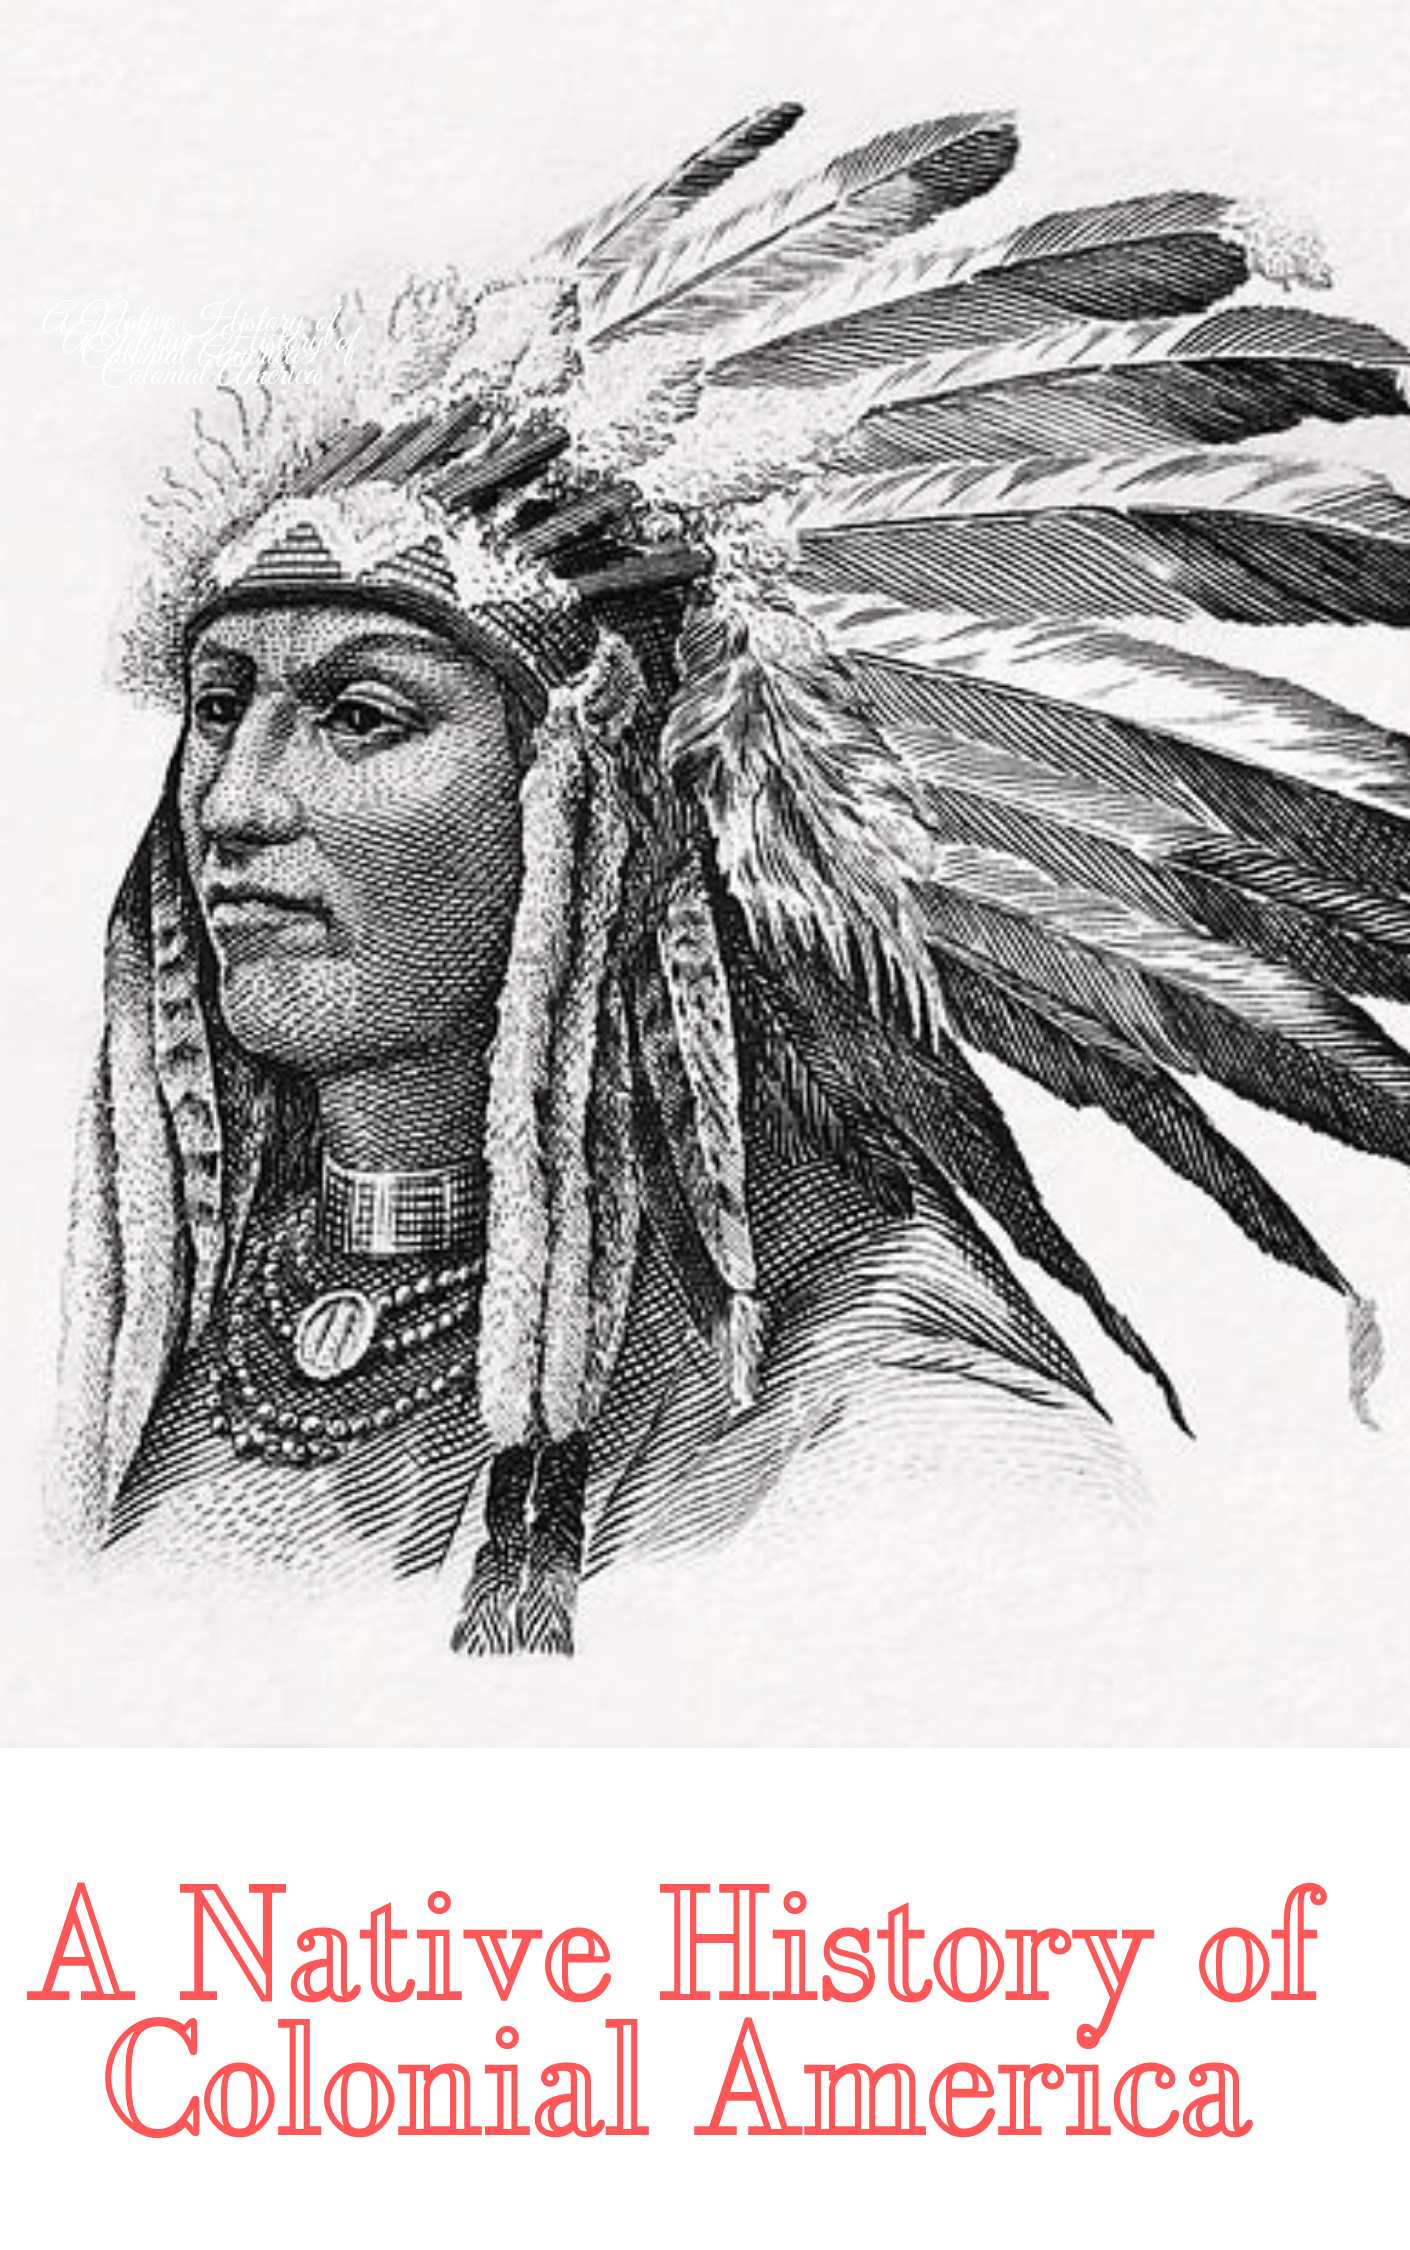 A Native History of Colonial America